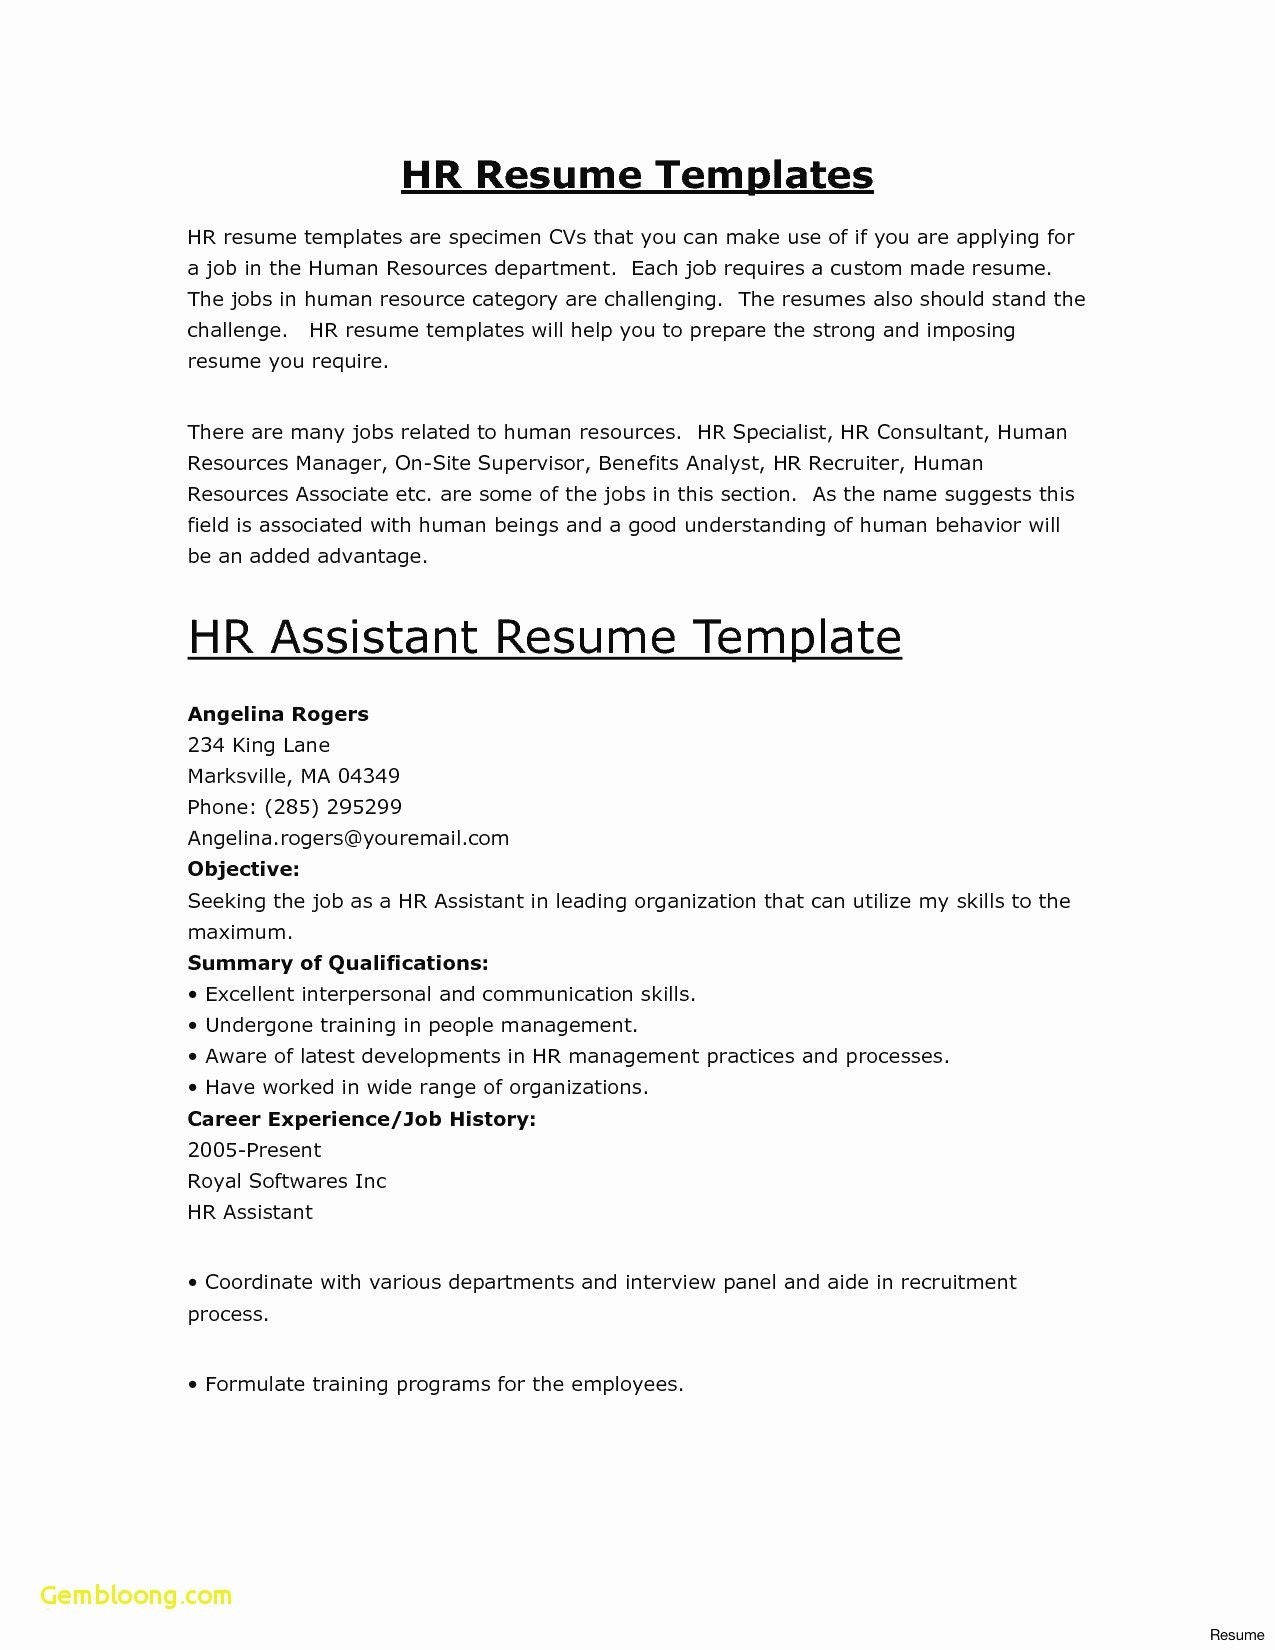 esthetician resume template Collection-Esthetician Resume Samples Awesome Resume for Freshers Download now 8-p